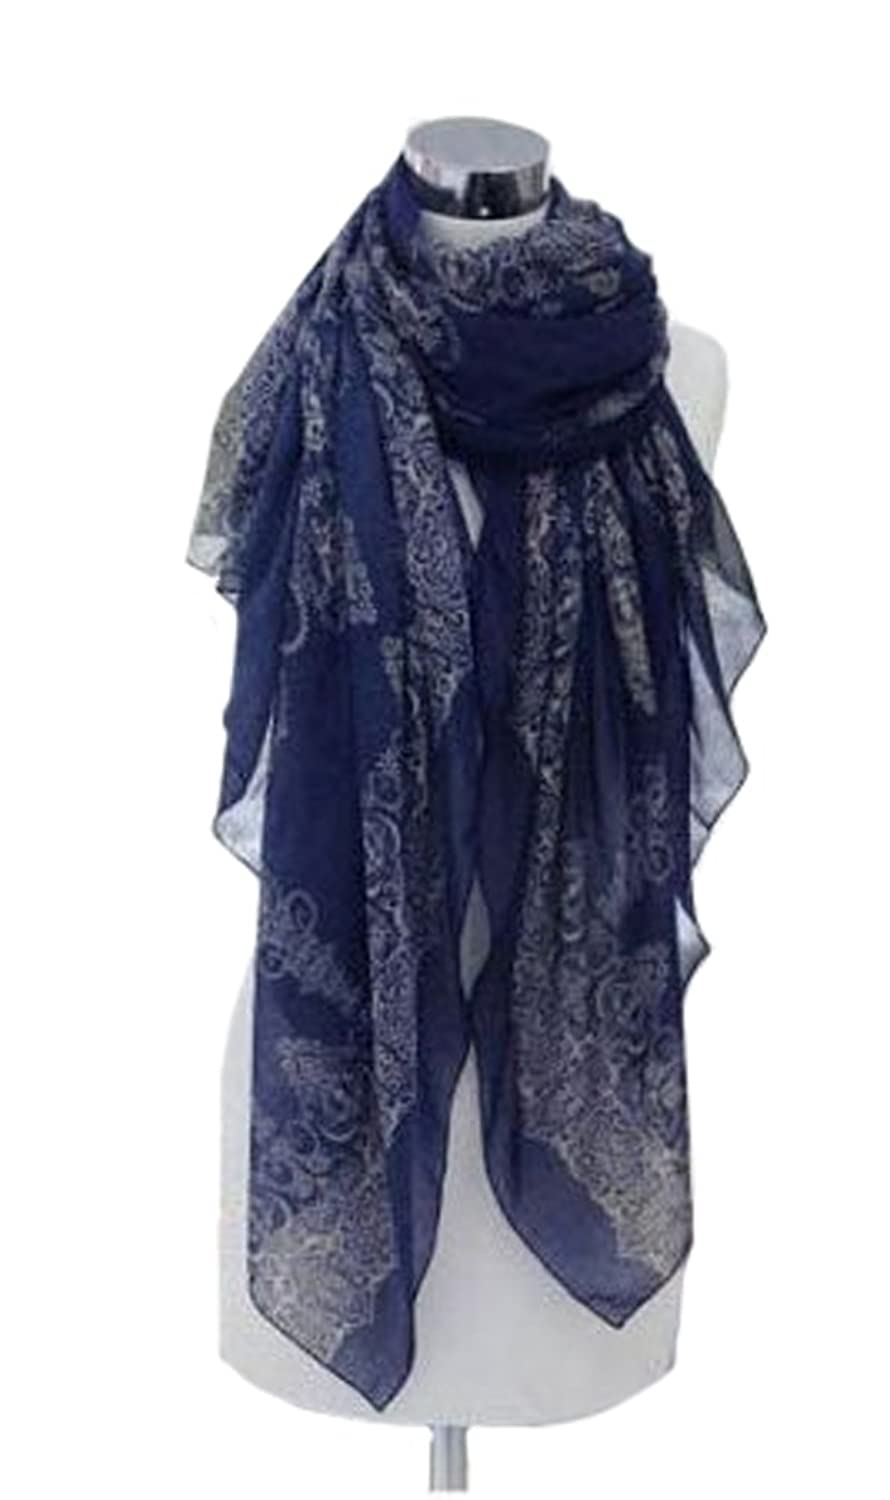 Fashion Women's Long Voile Cotton Scarf Wrap Ladies Shawl Girls Large Scarves